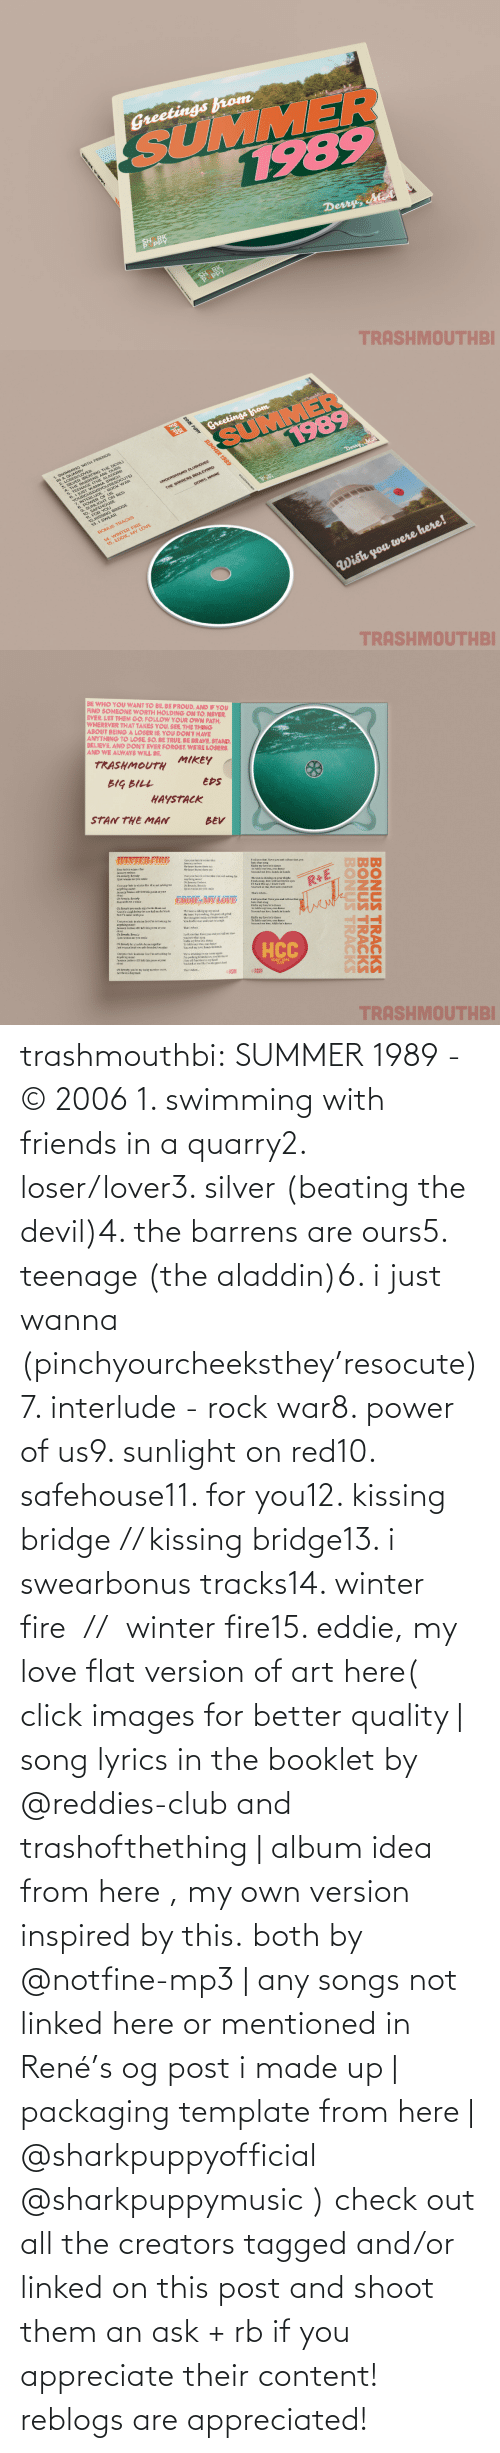 Isnt: trashmouthbi: SUMMER 1989 - © 2006 1. swimming with friends in a quarry2. loser/lover3. silver (beating the devil)4. the barrens are ours5. teenage (the aladdin)6. i just wanna (pinchyourcheeksthey'resocute)7. interlude - rock war8. power of us9. sunlight on red10. safehouse11. for you12. kissing bridge // kissing bridge13. i swearbonus tracks14. winter fire  //  winter fire15. eddie, my love flat version of art here( click images for better quality | song lyrics in the booklet by @reddies-club​ and trashofthething | album idea from here , my own version inspired by this. both by @notfine-mp3​ | any songs not linked here or mentioned in René's og post i made up | packaging template from here | @sharkpuppyofficial​ @sharkpuppymusic​ ) check out all the creators tagged and/or linked on this post and shoot them an ask + rb if you appreciate their content! reblogs are appreciated!